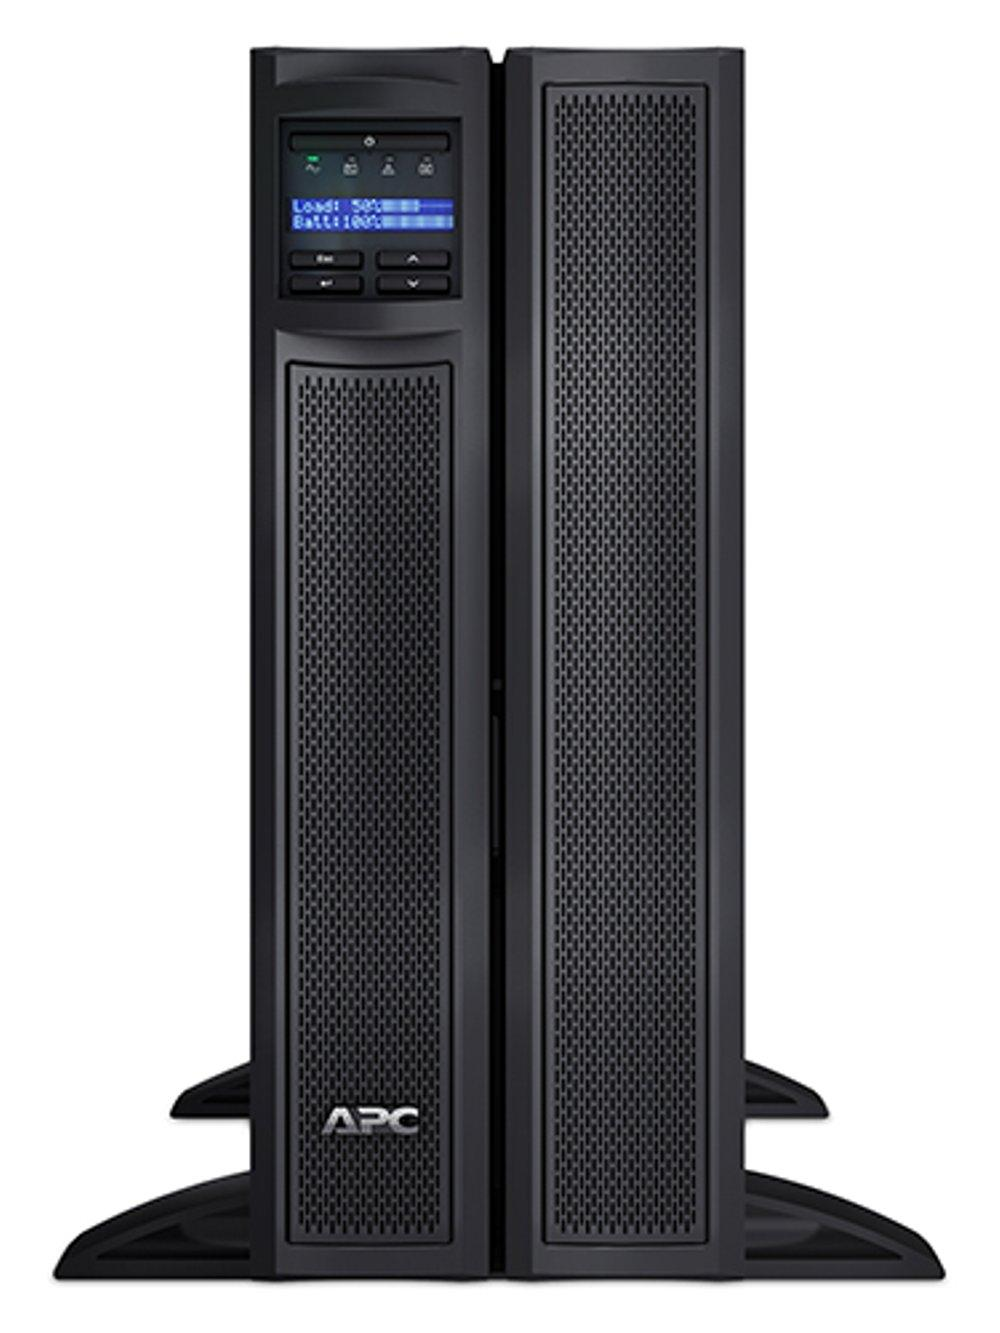 Buy Sell Cheapest Apc 17 Rack Best Quality Product Deals Ap5816 Lcd Console With Integrated 16 Port Analog Kvm Switch Idr 32960000 Idr32960000 View Detail Smx2200r2hvnc Smart Ups X 2200va Tower